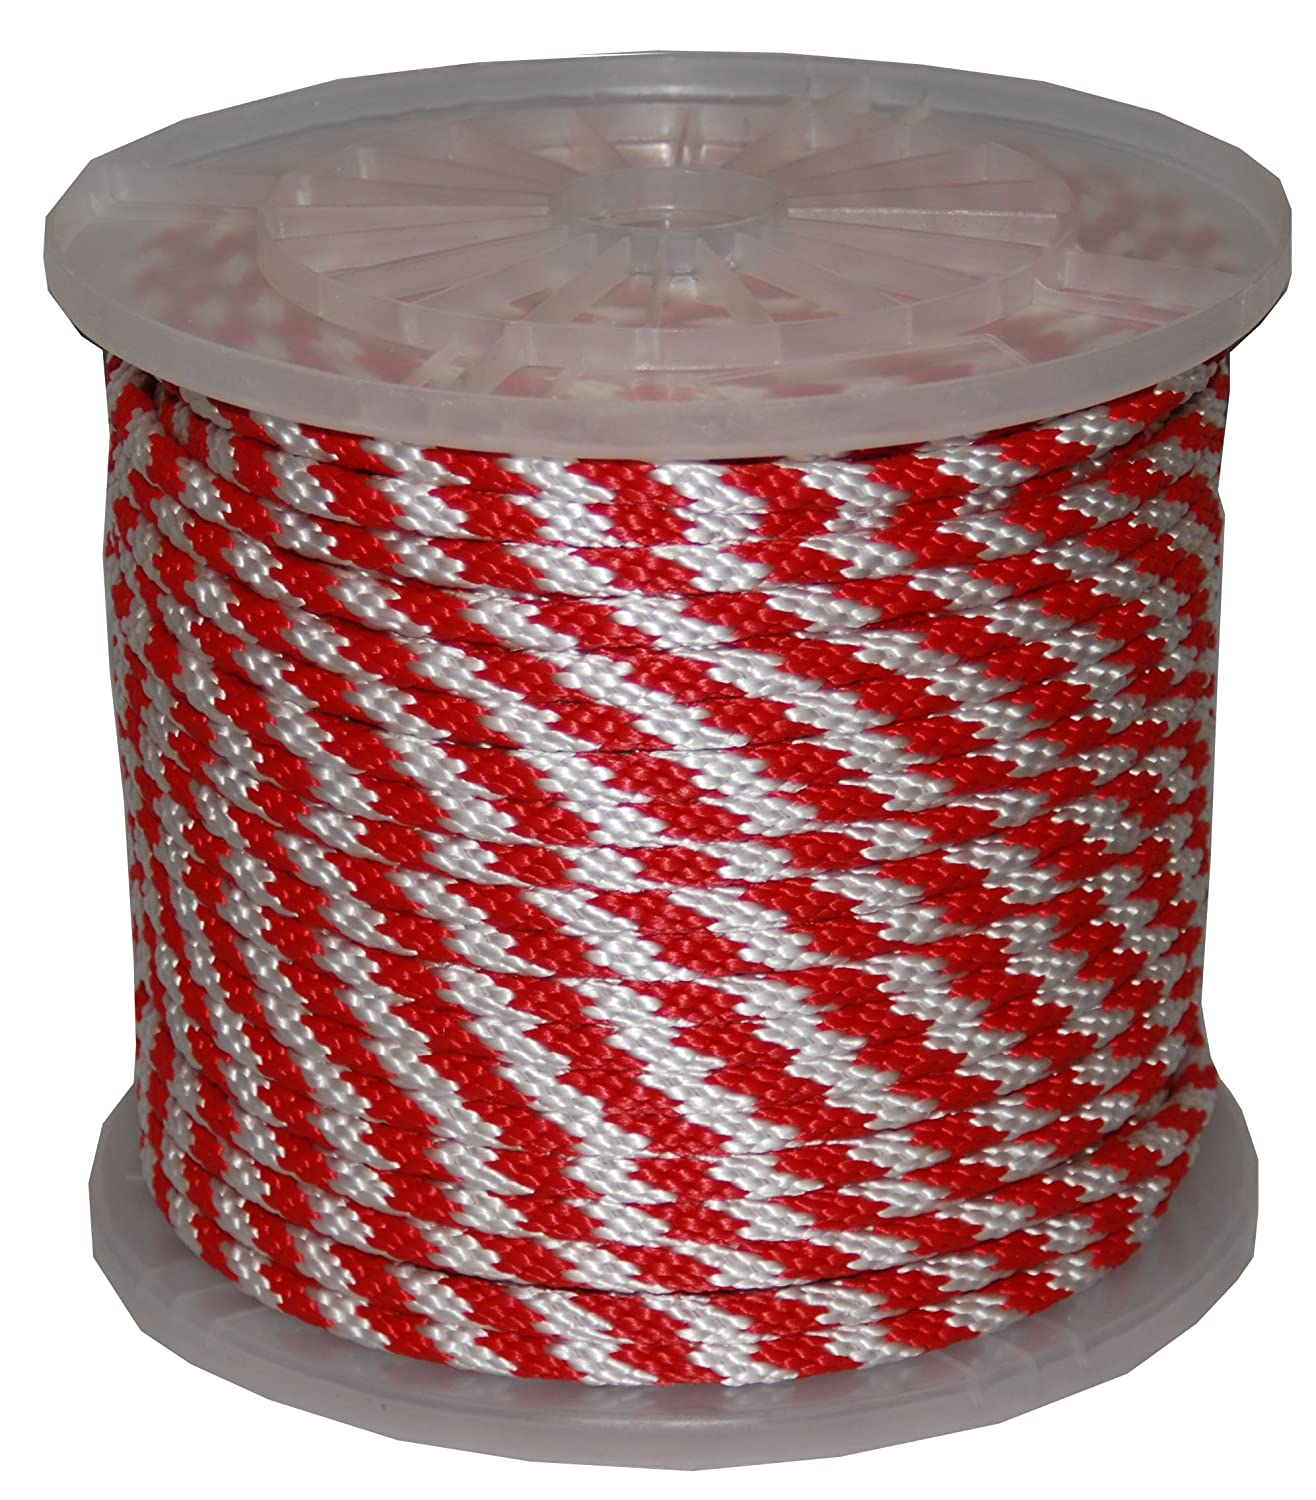 T.W . Evans Cordage 98011 5/8-Inch by 200-Feet Solid Braid Propylene Multifilament Derby Rope, Red and White [並行輸入品]  B00DKA35TA